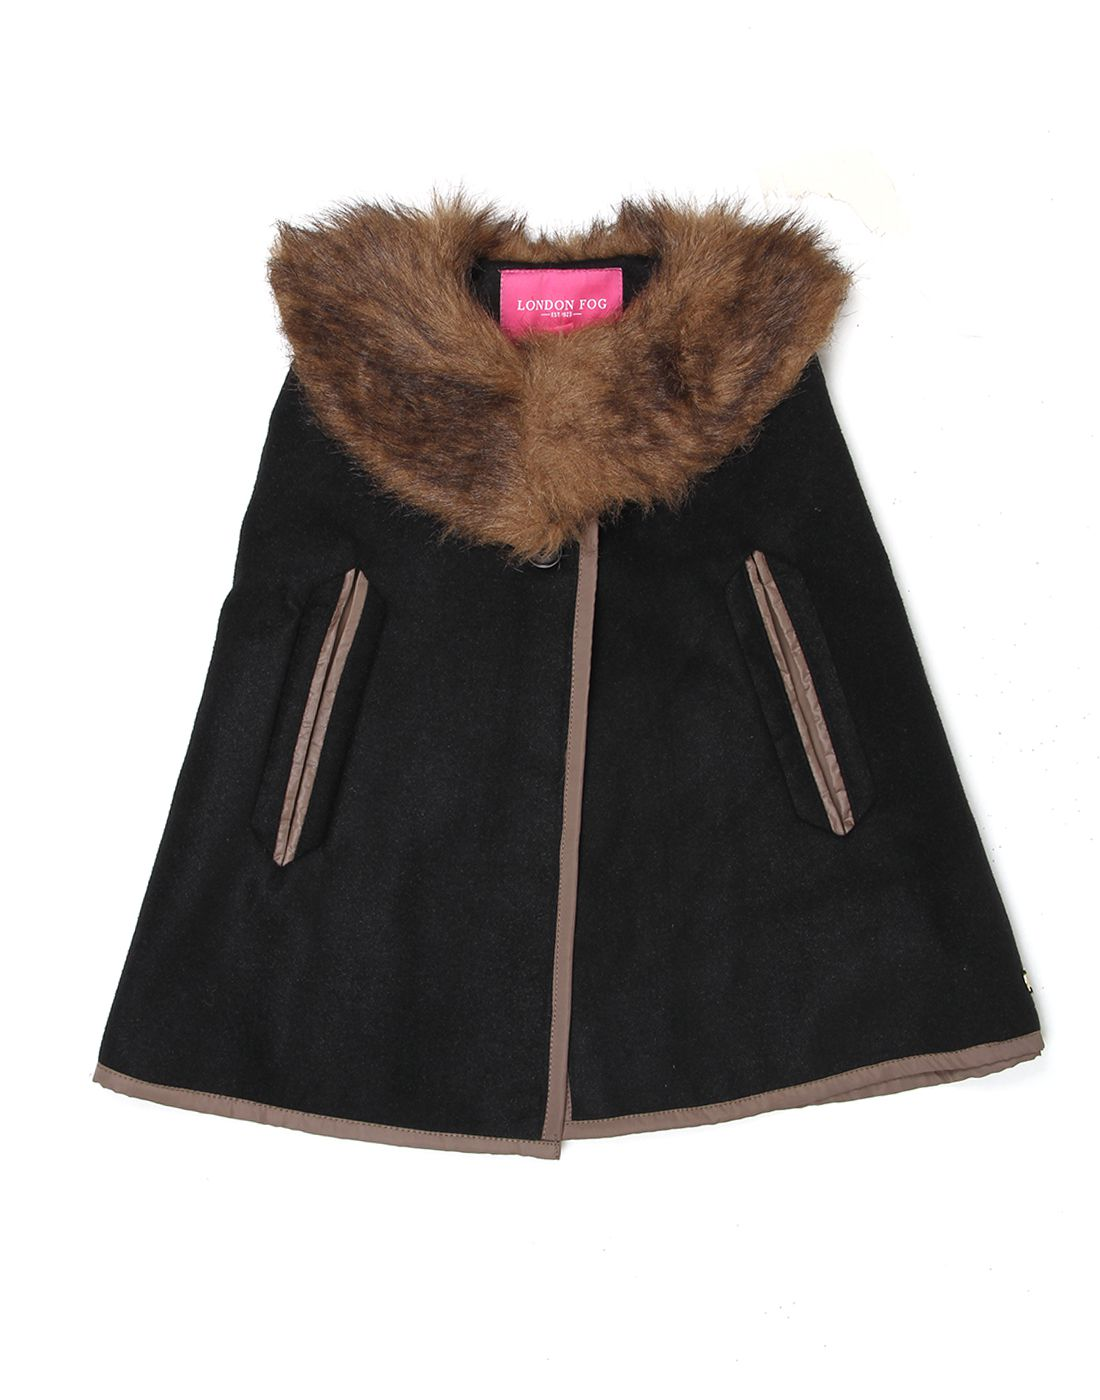 London Fog Girls Black Sleeveless Jacket